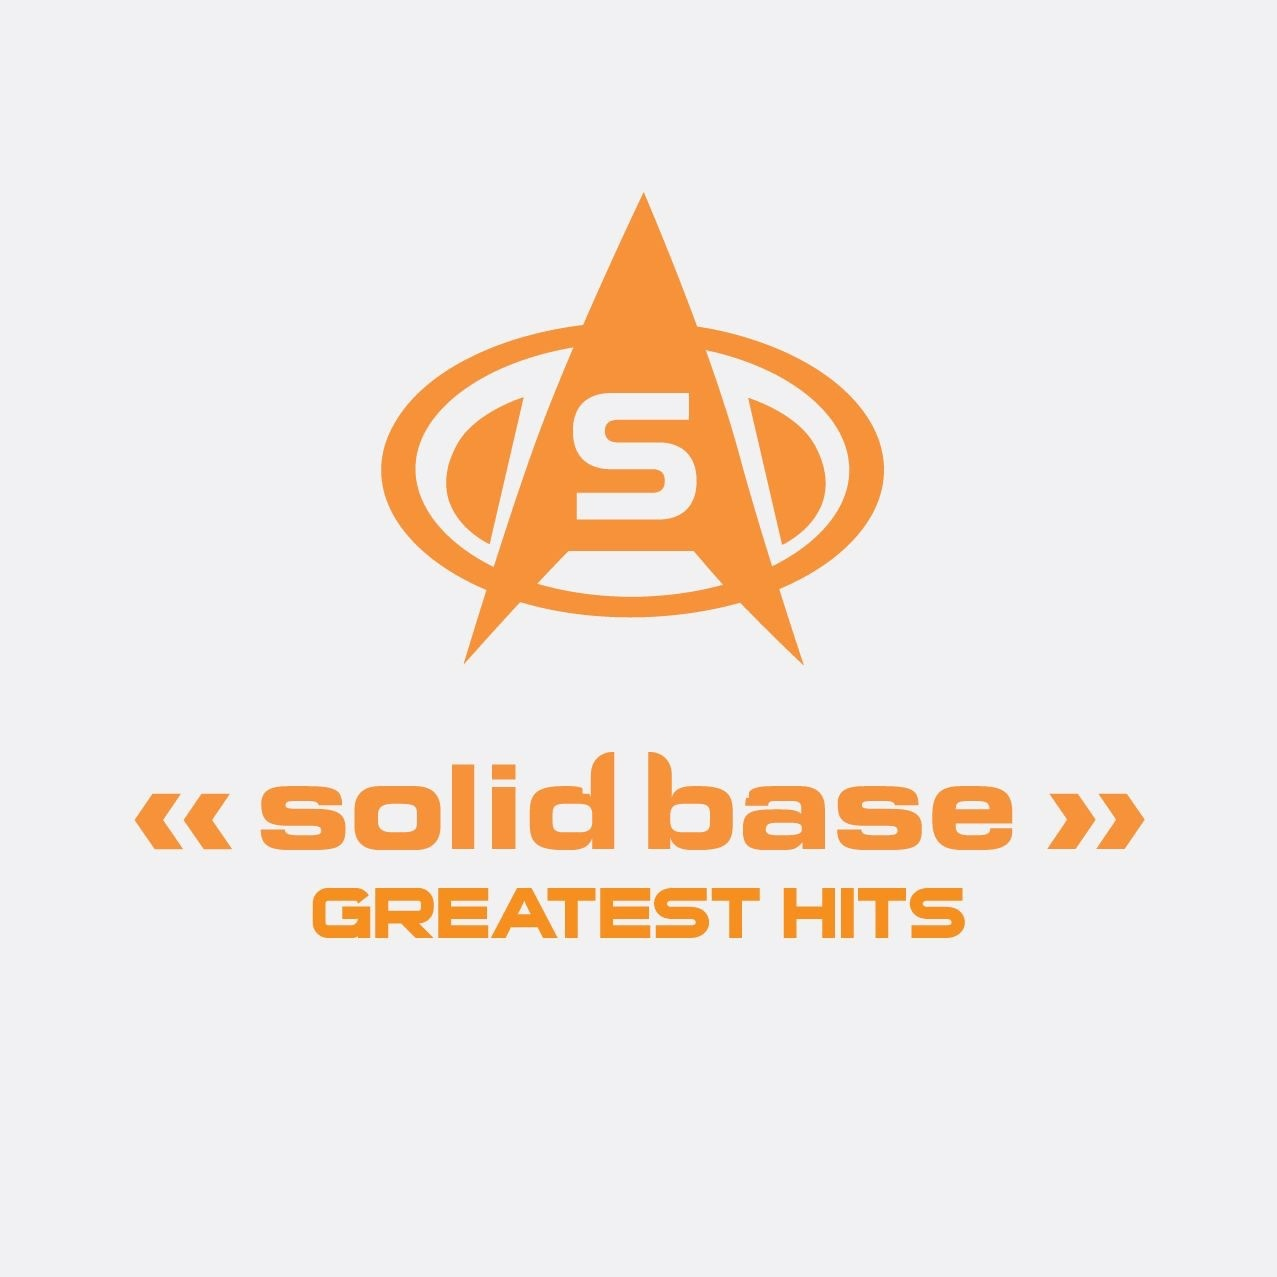 SOLID BASE album Greatest Hits